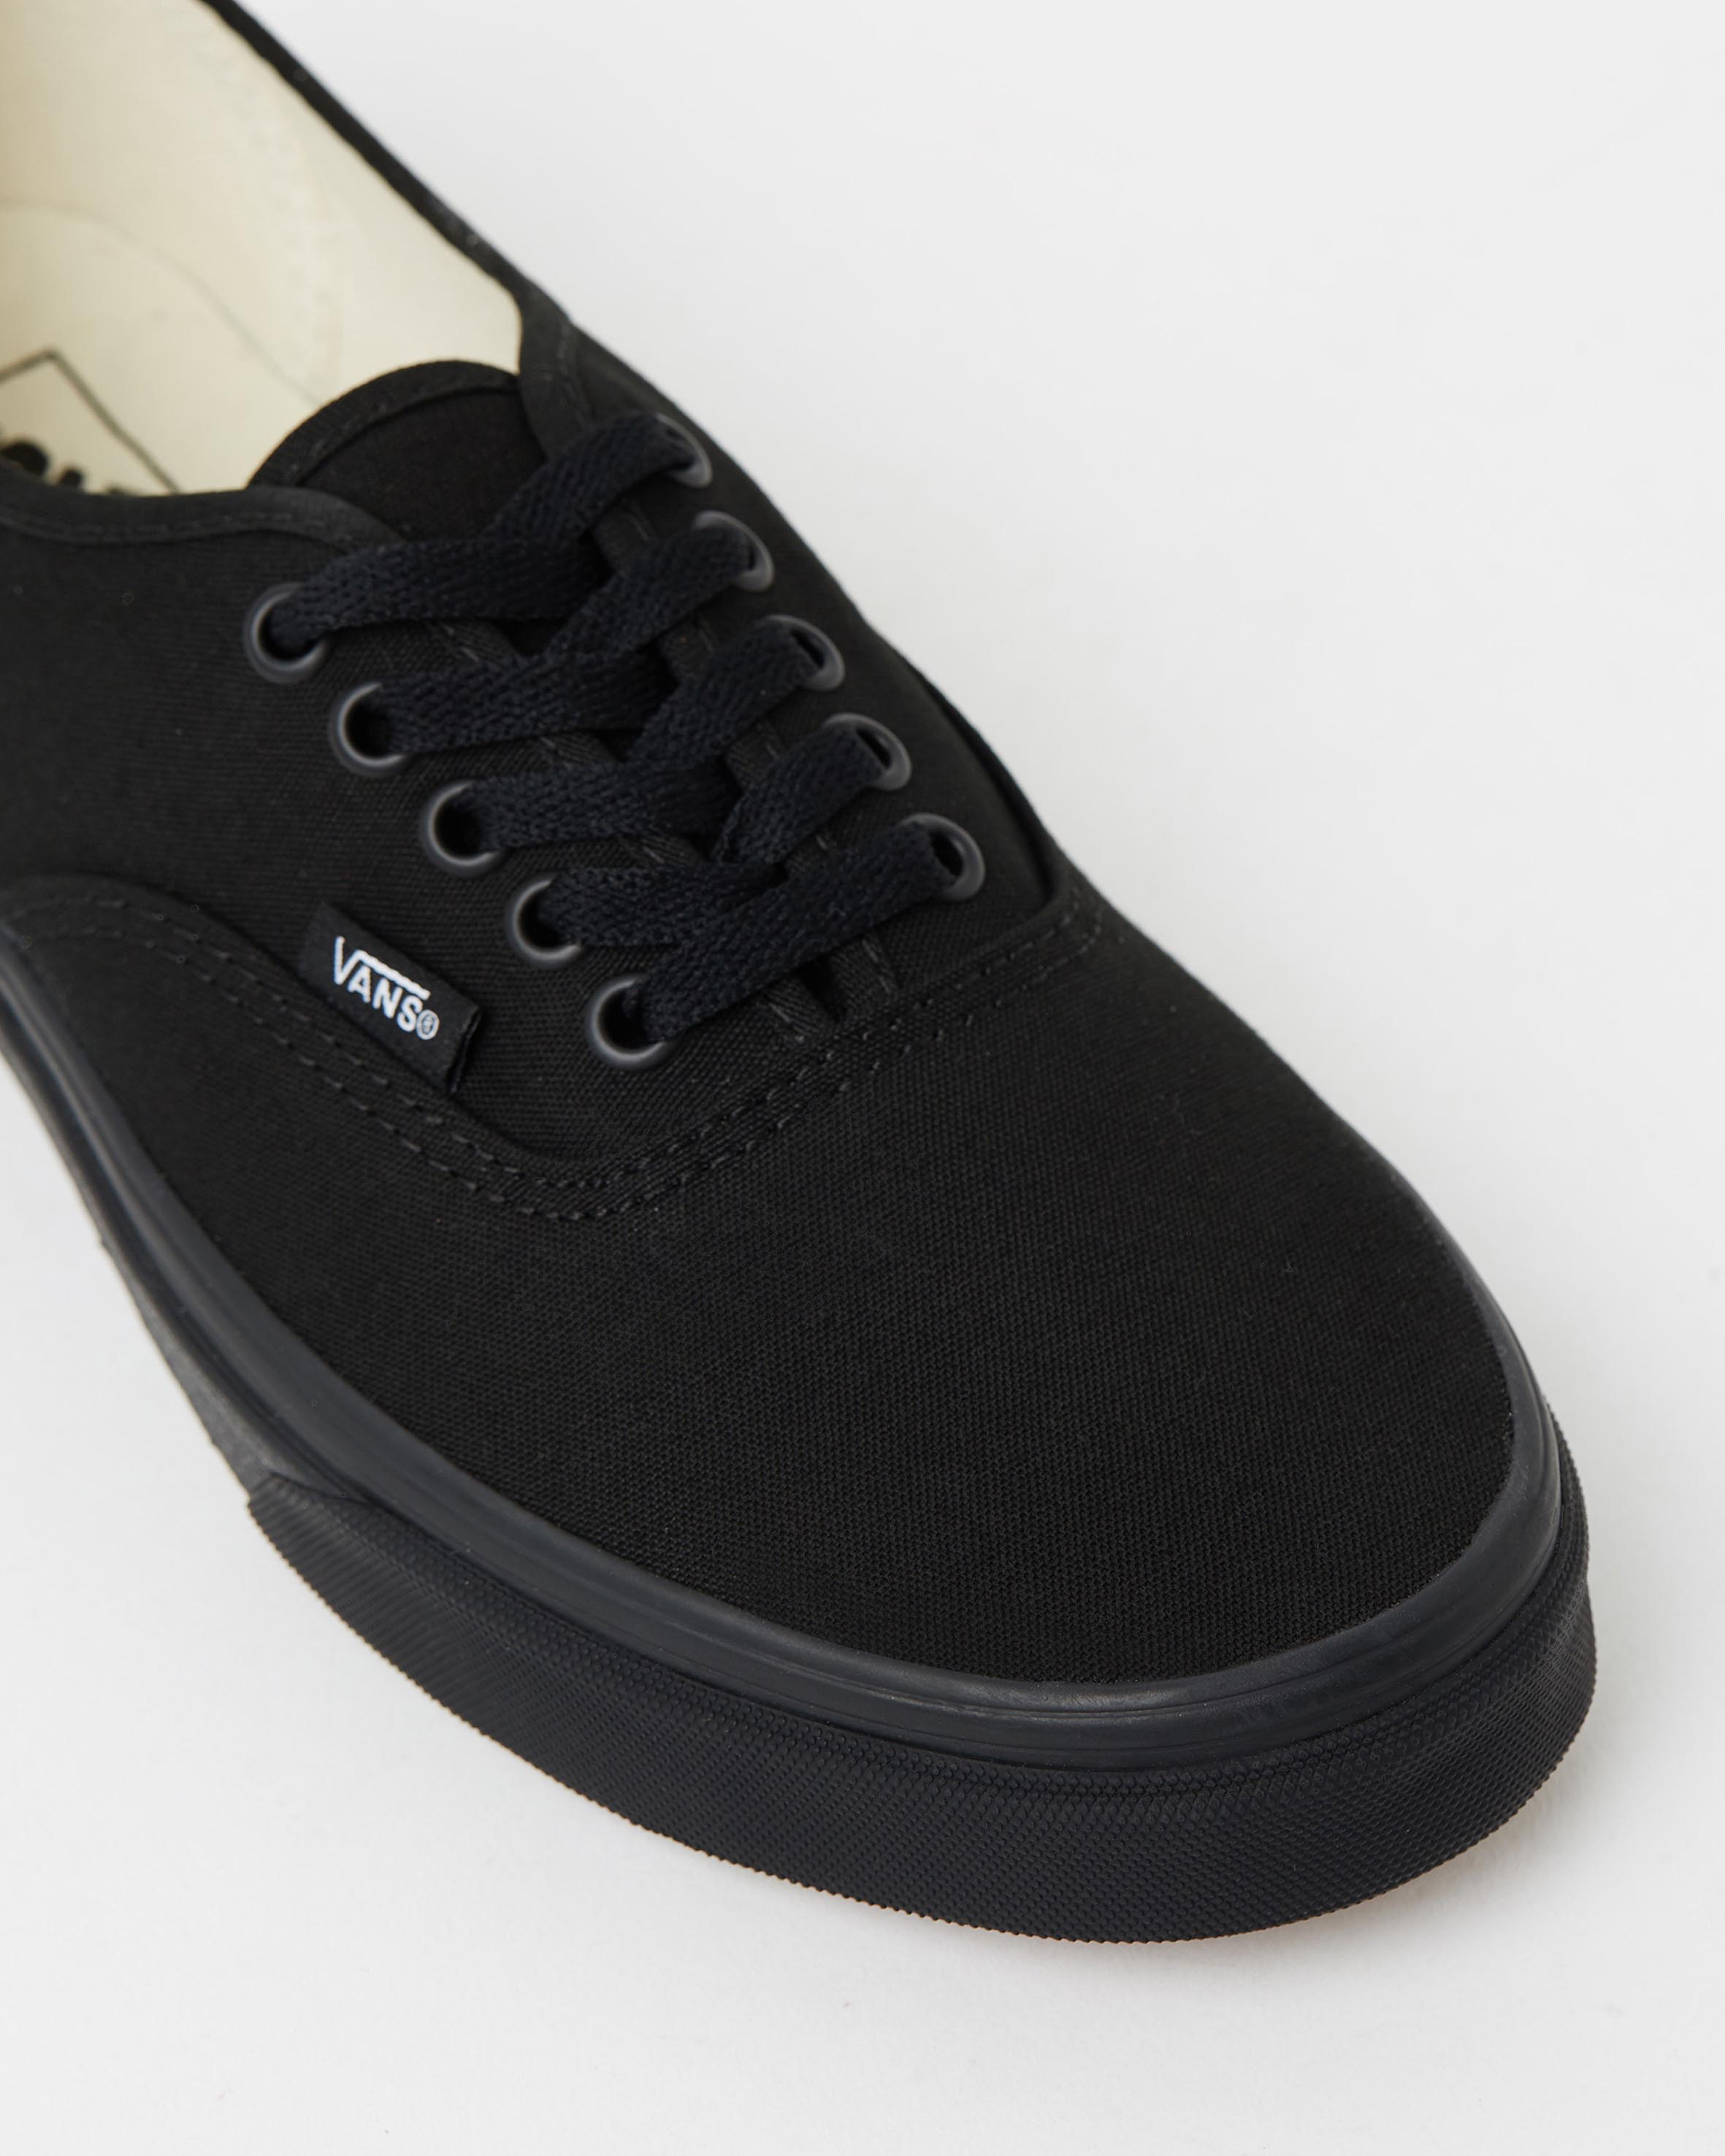 dd2d5e7188 ... Vans Authentic Black Black Mens Trainers 4